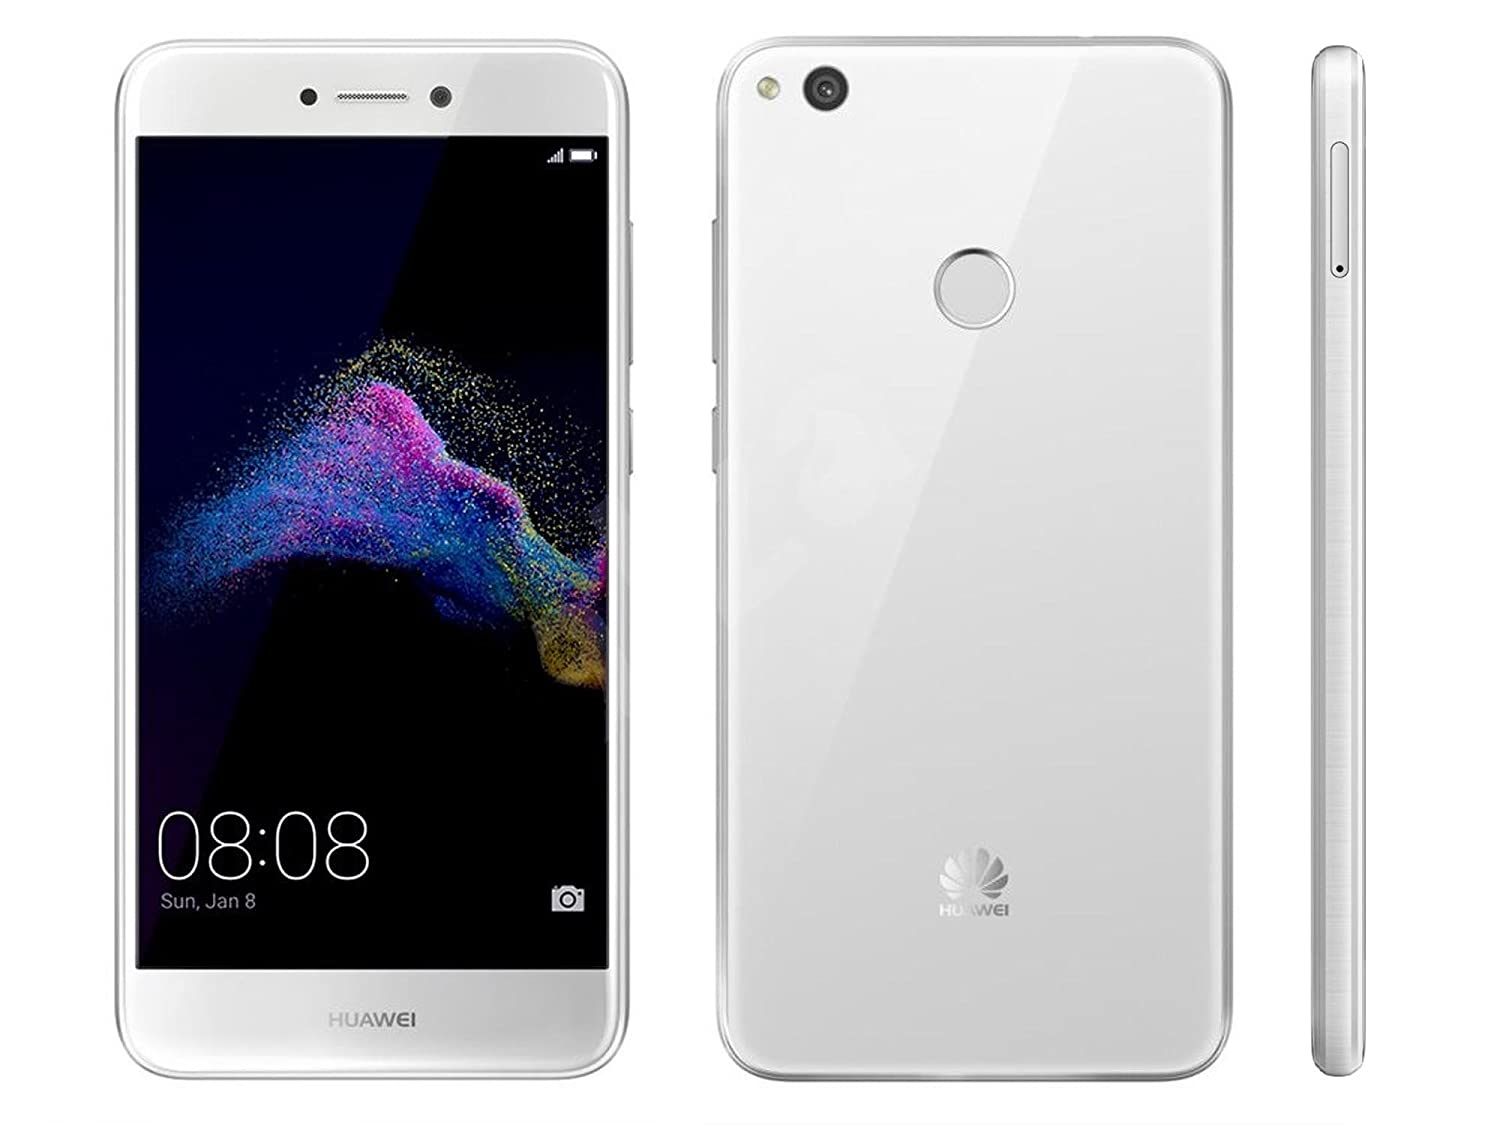 Huawei P9 Lite (2017) 4G 16GB Dual-SIM White EU: Amazon.es ...